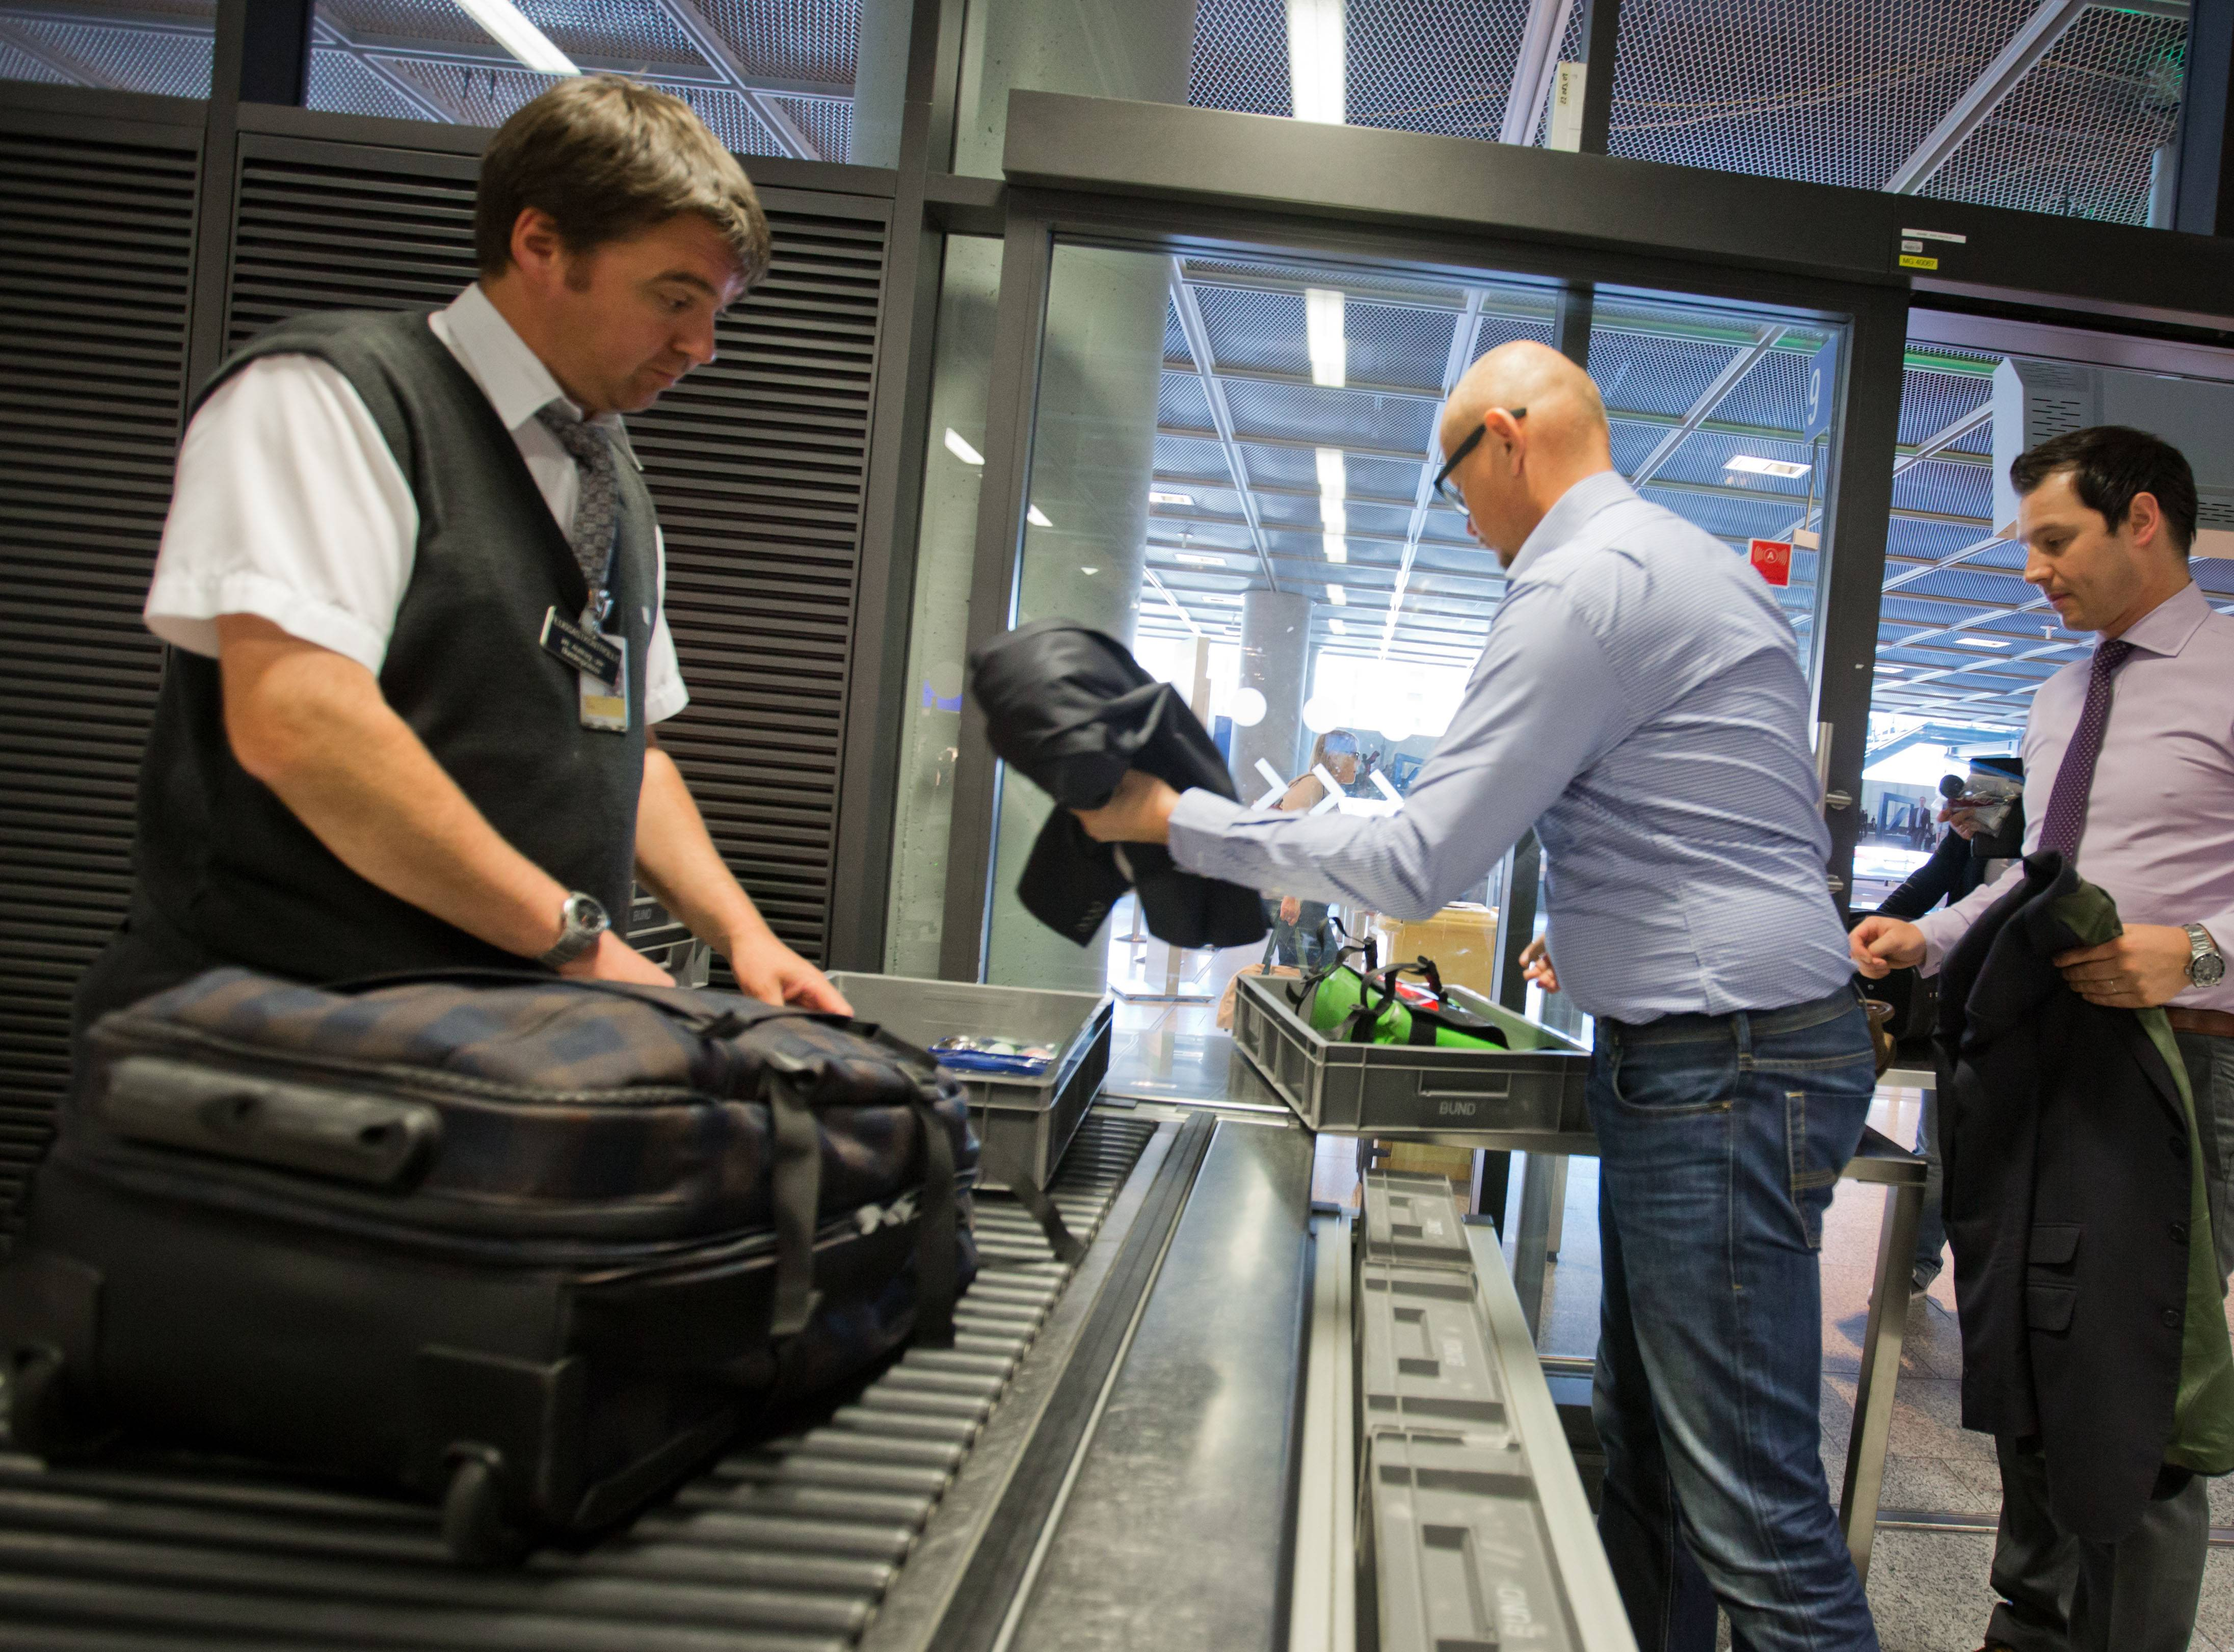 Passengers queue at the security checkpoint at the Rhein-Main airport in Frankfurt, Germany, Thursday. U.S. intelligence officials are concerned al-Qaida is trying to develop a new and improved bomb that could go undetected through airport security.